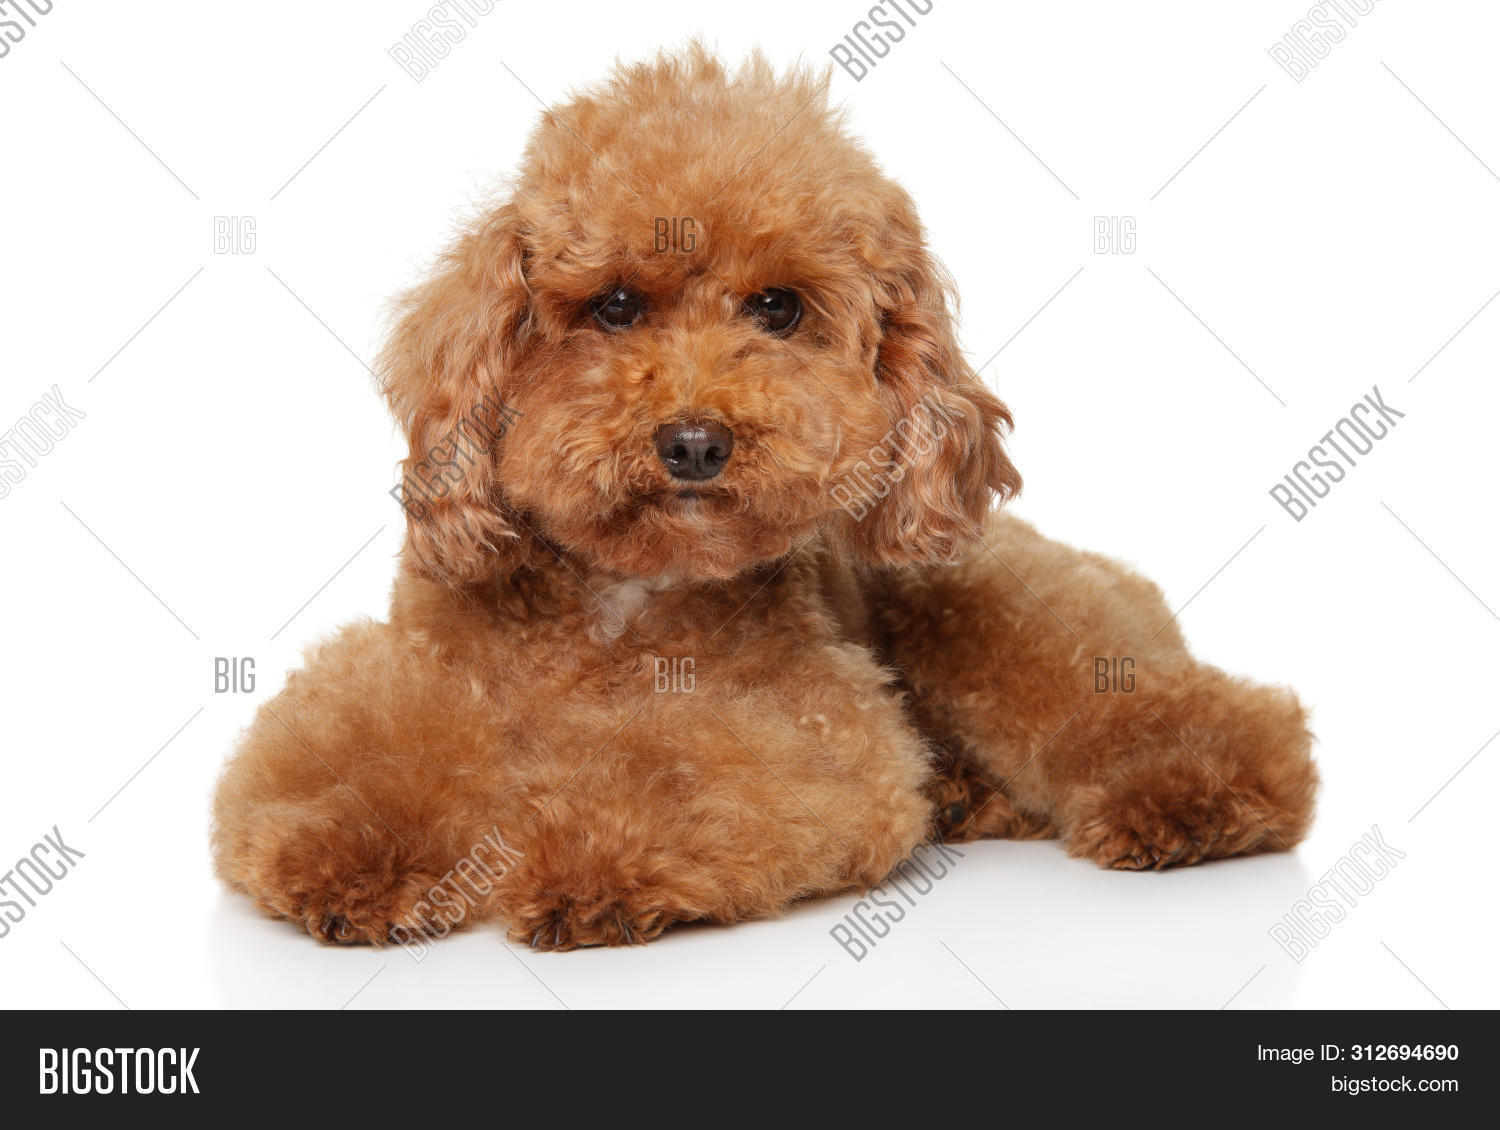 Funny Red Toy Poodle Image Photo Free Trial Bigstock